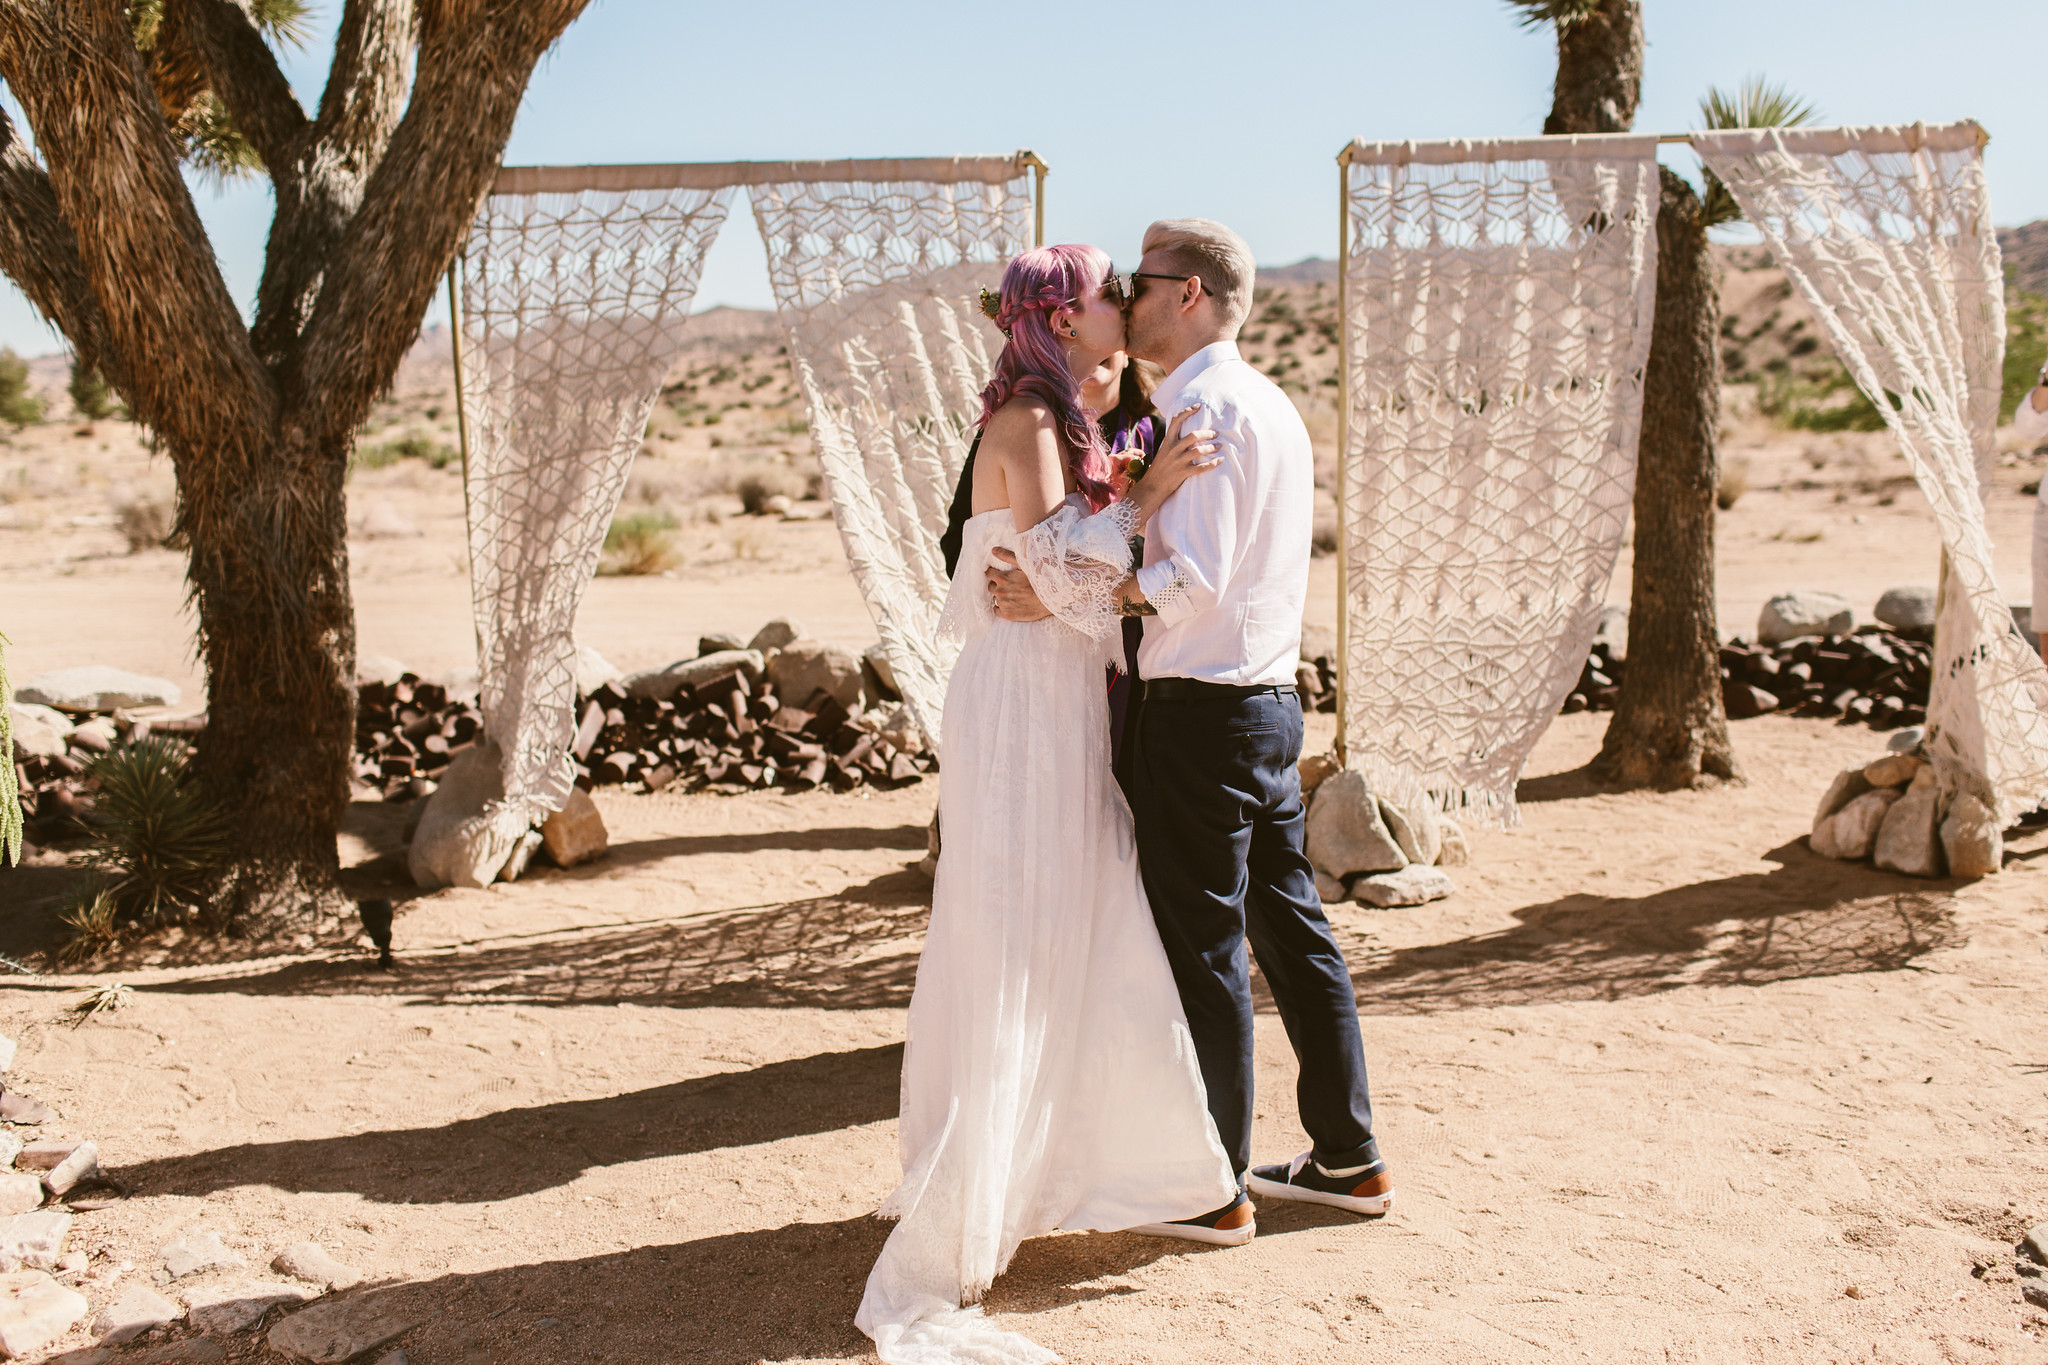 zoe-london-wedding-joshua-tree-74.jpg